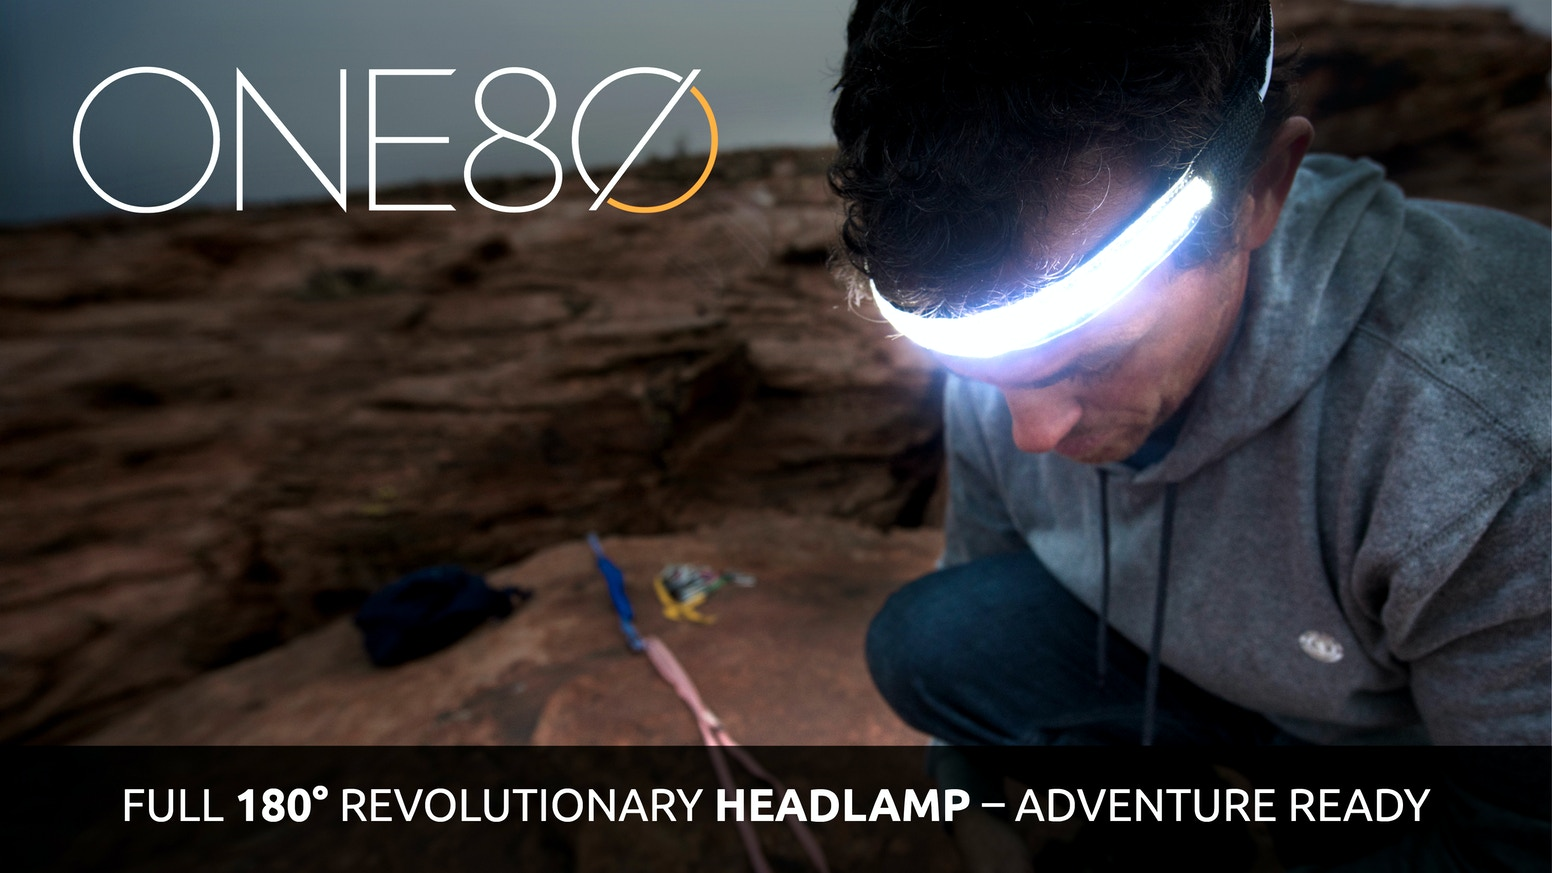 Revolutionary head and belt lamps. Full peripheral vision. Simulates daylight - eliminates tunnel vision. For the active lifestyle.